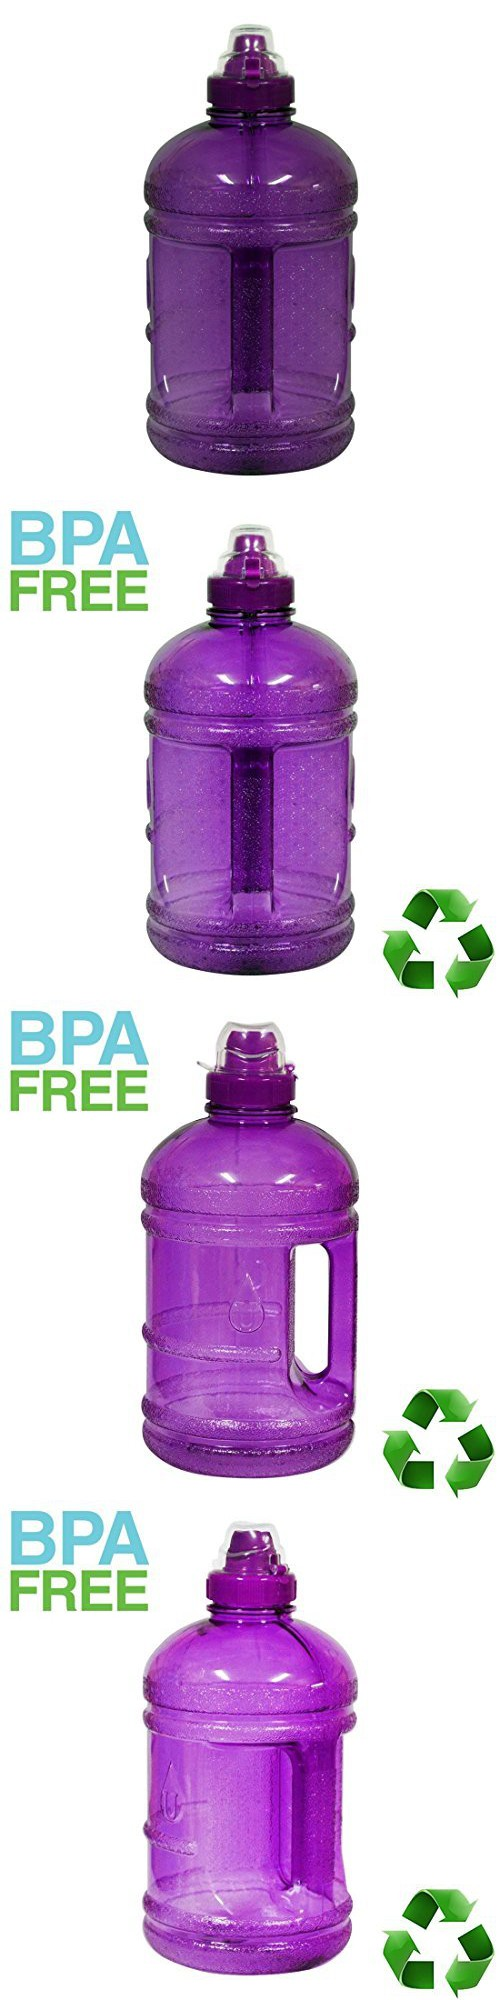 757d815a46 1/2 Gallon (64 oz.) BPA Free FDA Approved Plastic Water Bottle w/ 48mm  Twist Cap Perfectly For Outdoor Sports Gym Fitness Home (Purple)